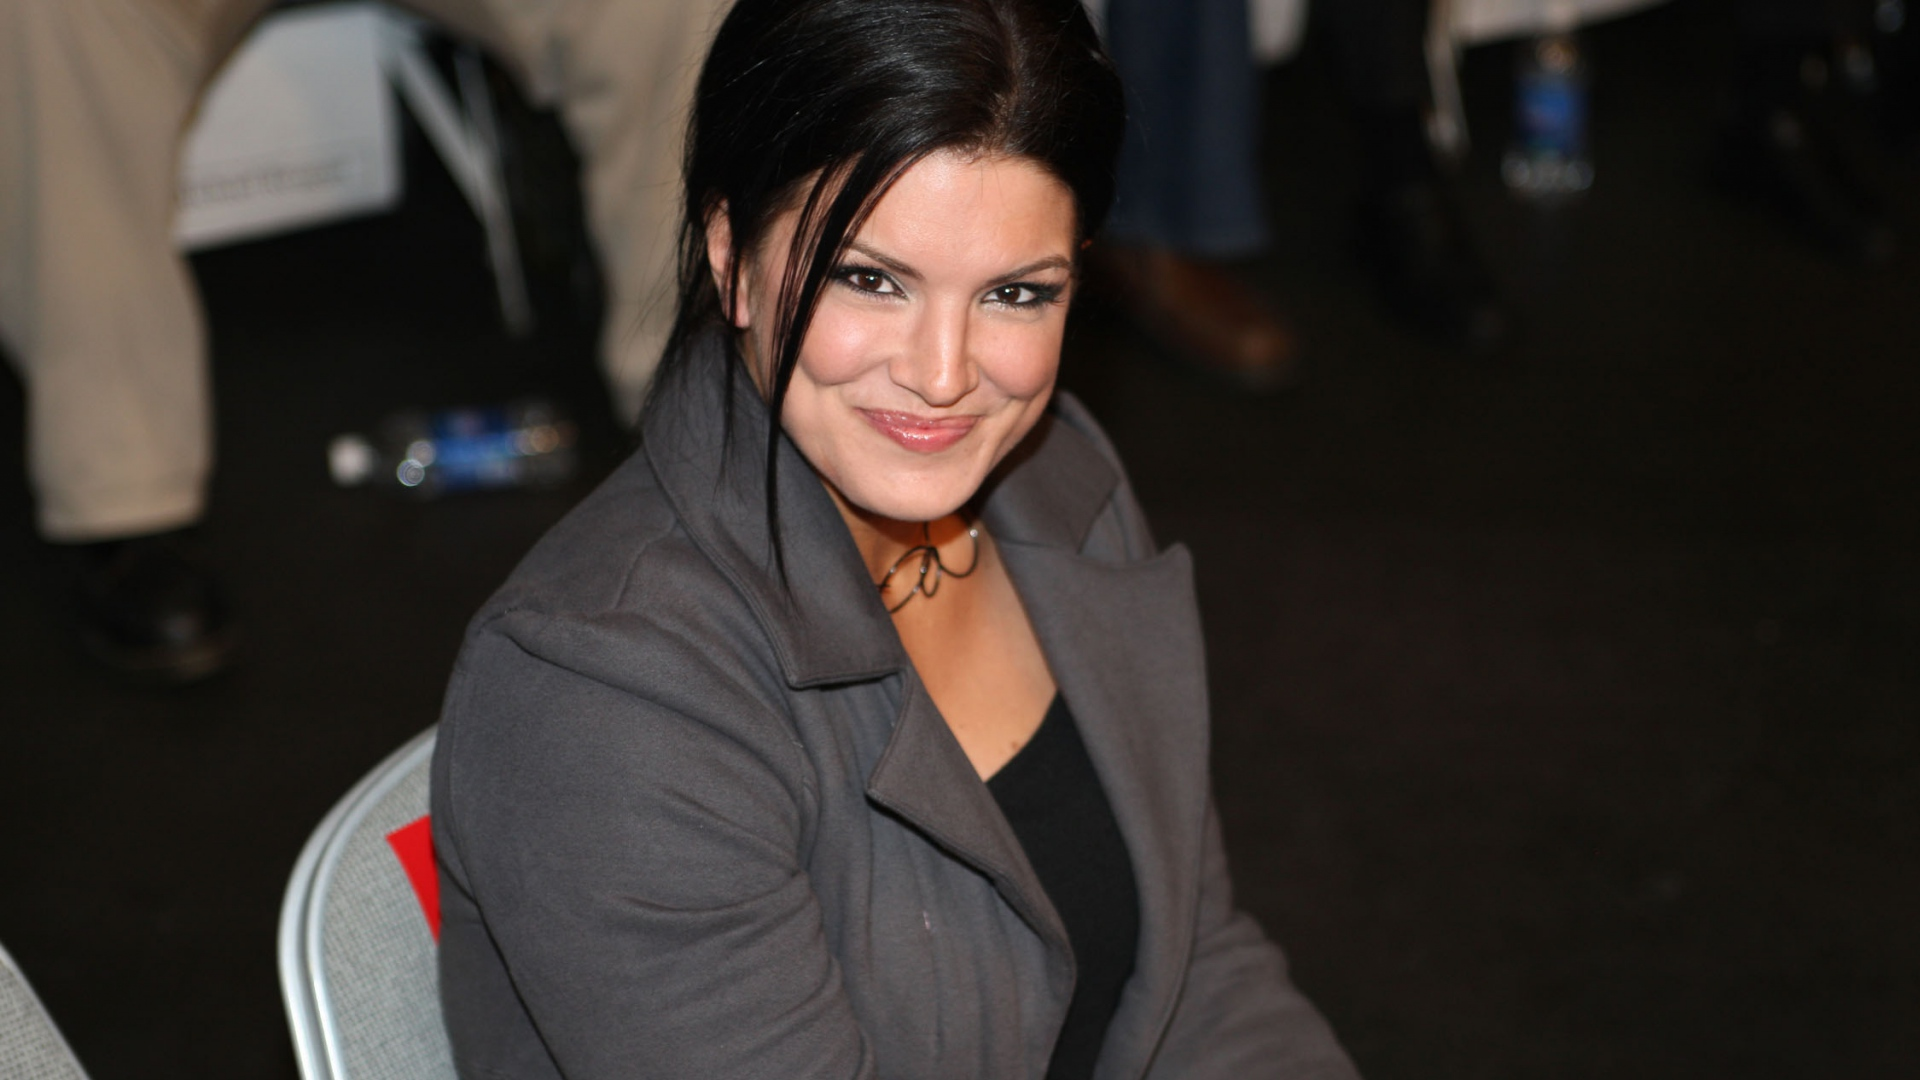 Celebrity Gina Carano nudes (73 photo), Pussy, Is a cute, Selfie, bra 2020